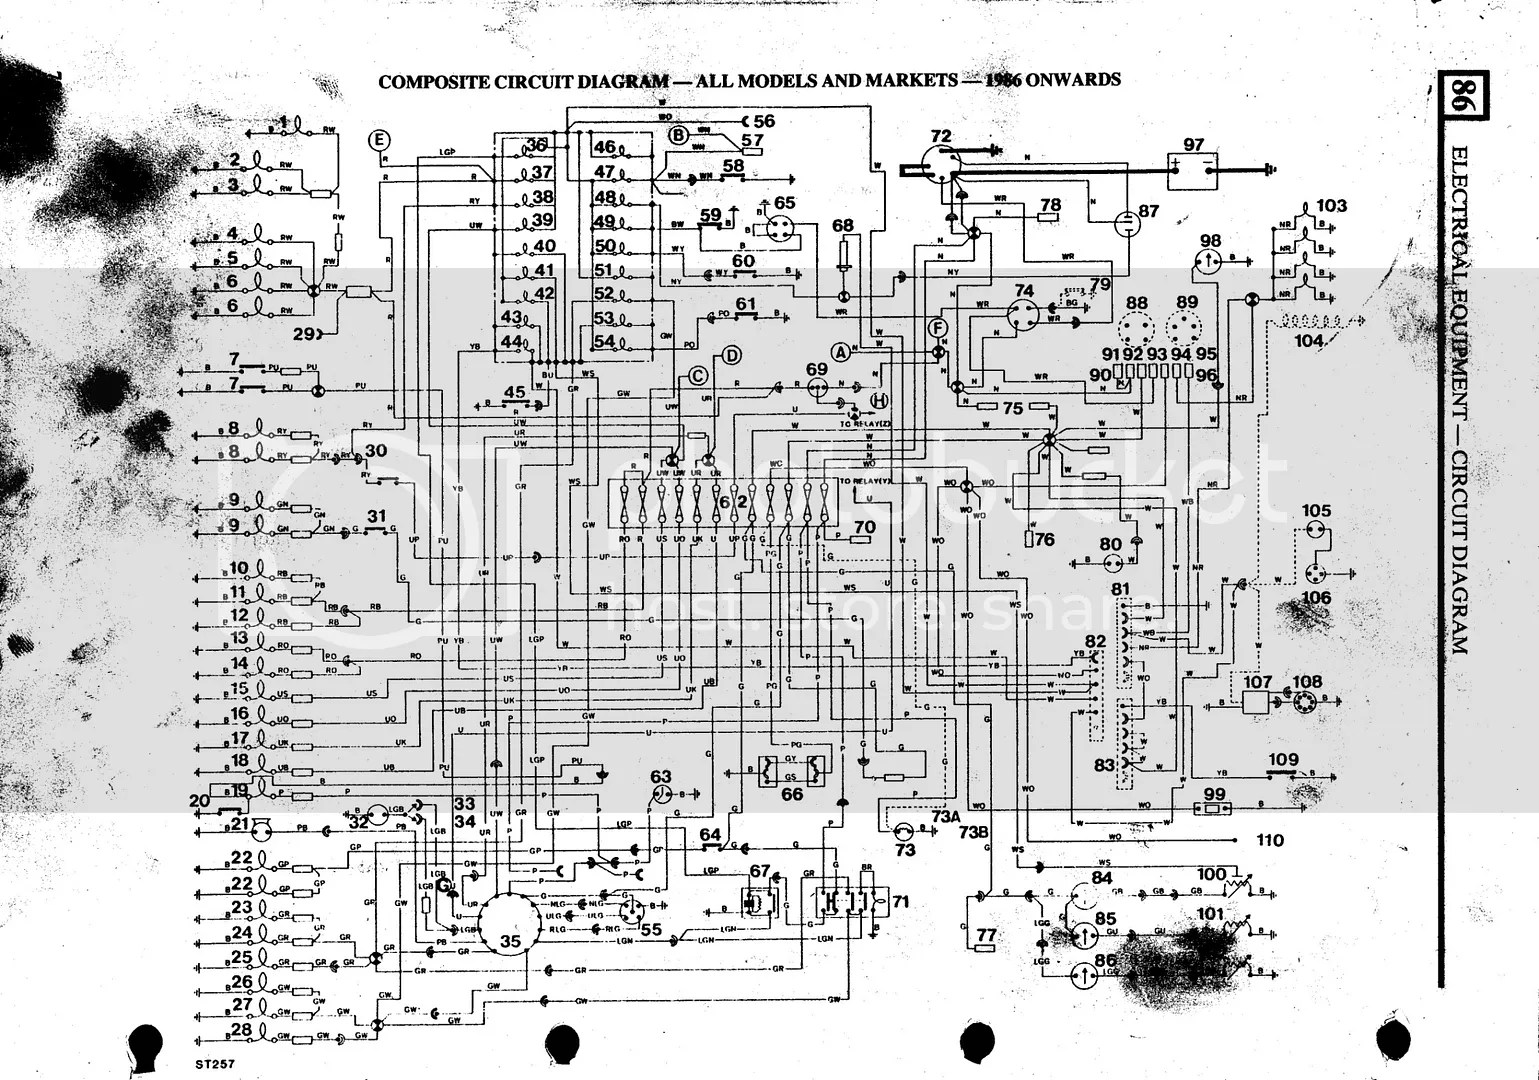 hight resolution of wiring diagram land rover discovery 1 my wiring diagramland rover discovery 1 wiring diagram pdf wiring